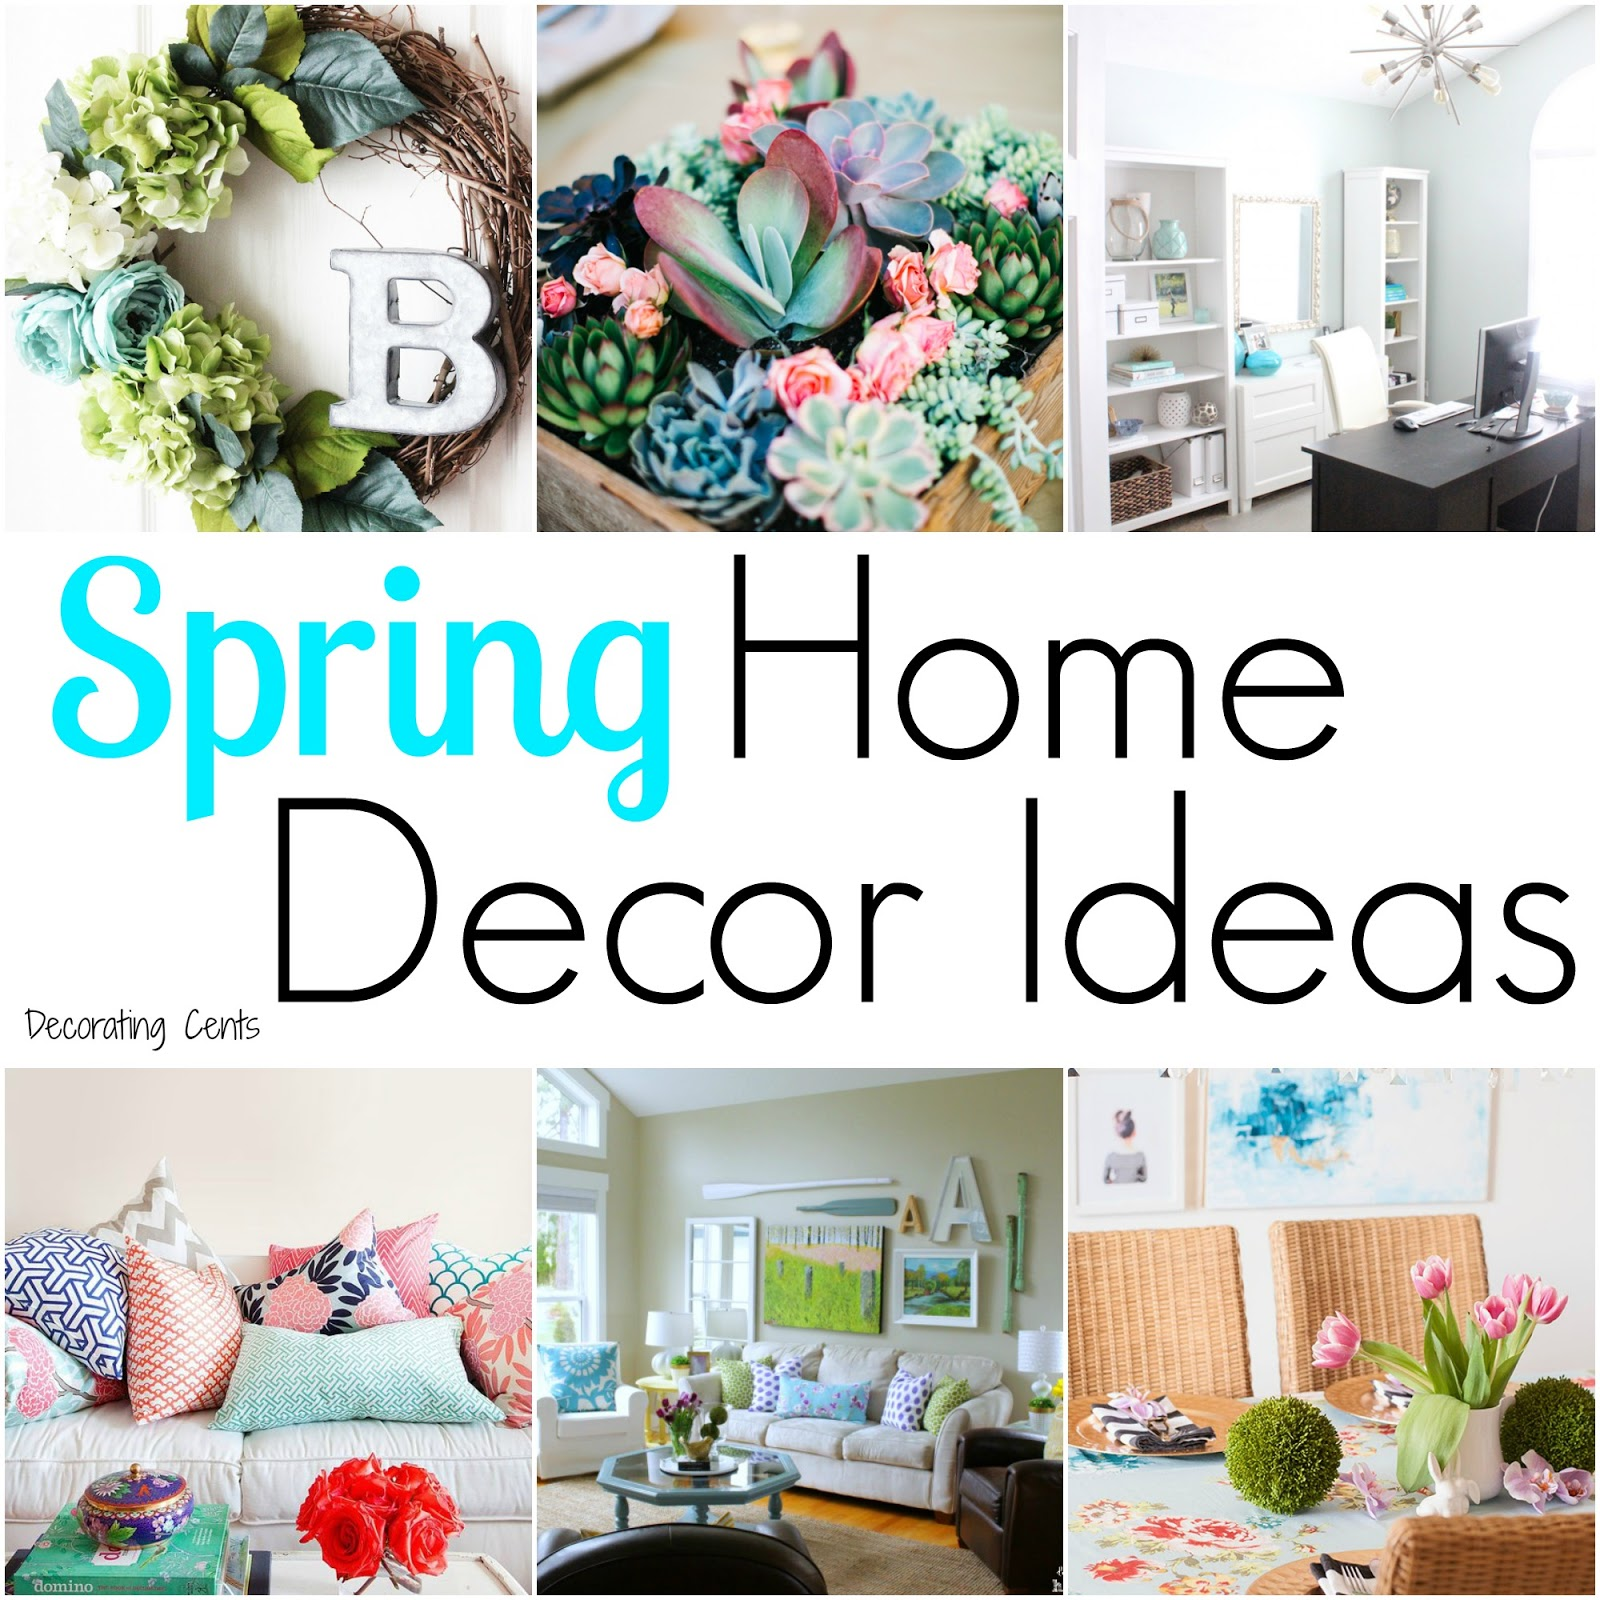 Decorating cents spring home decor ideas for Home and decor ideas